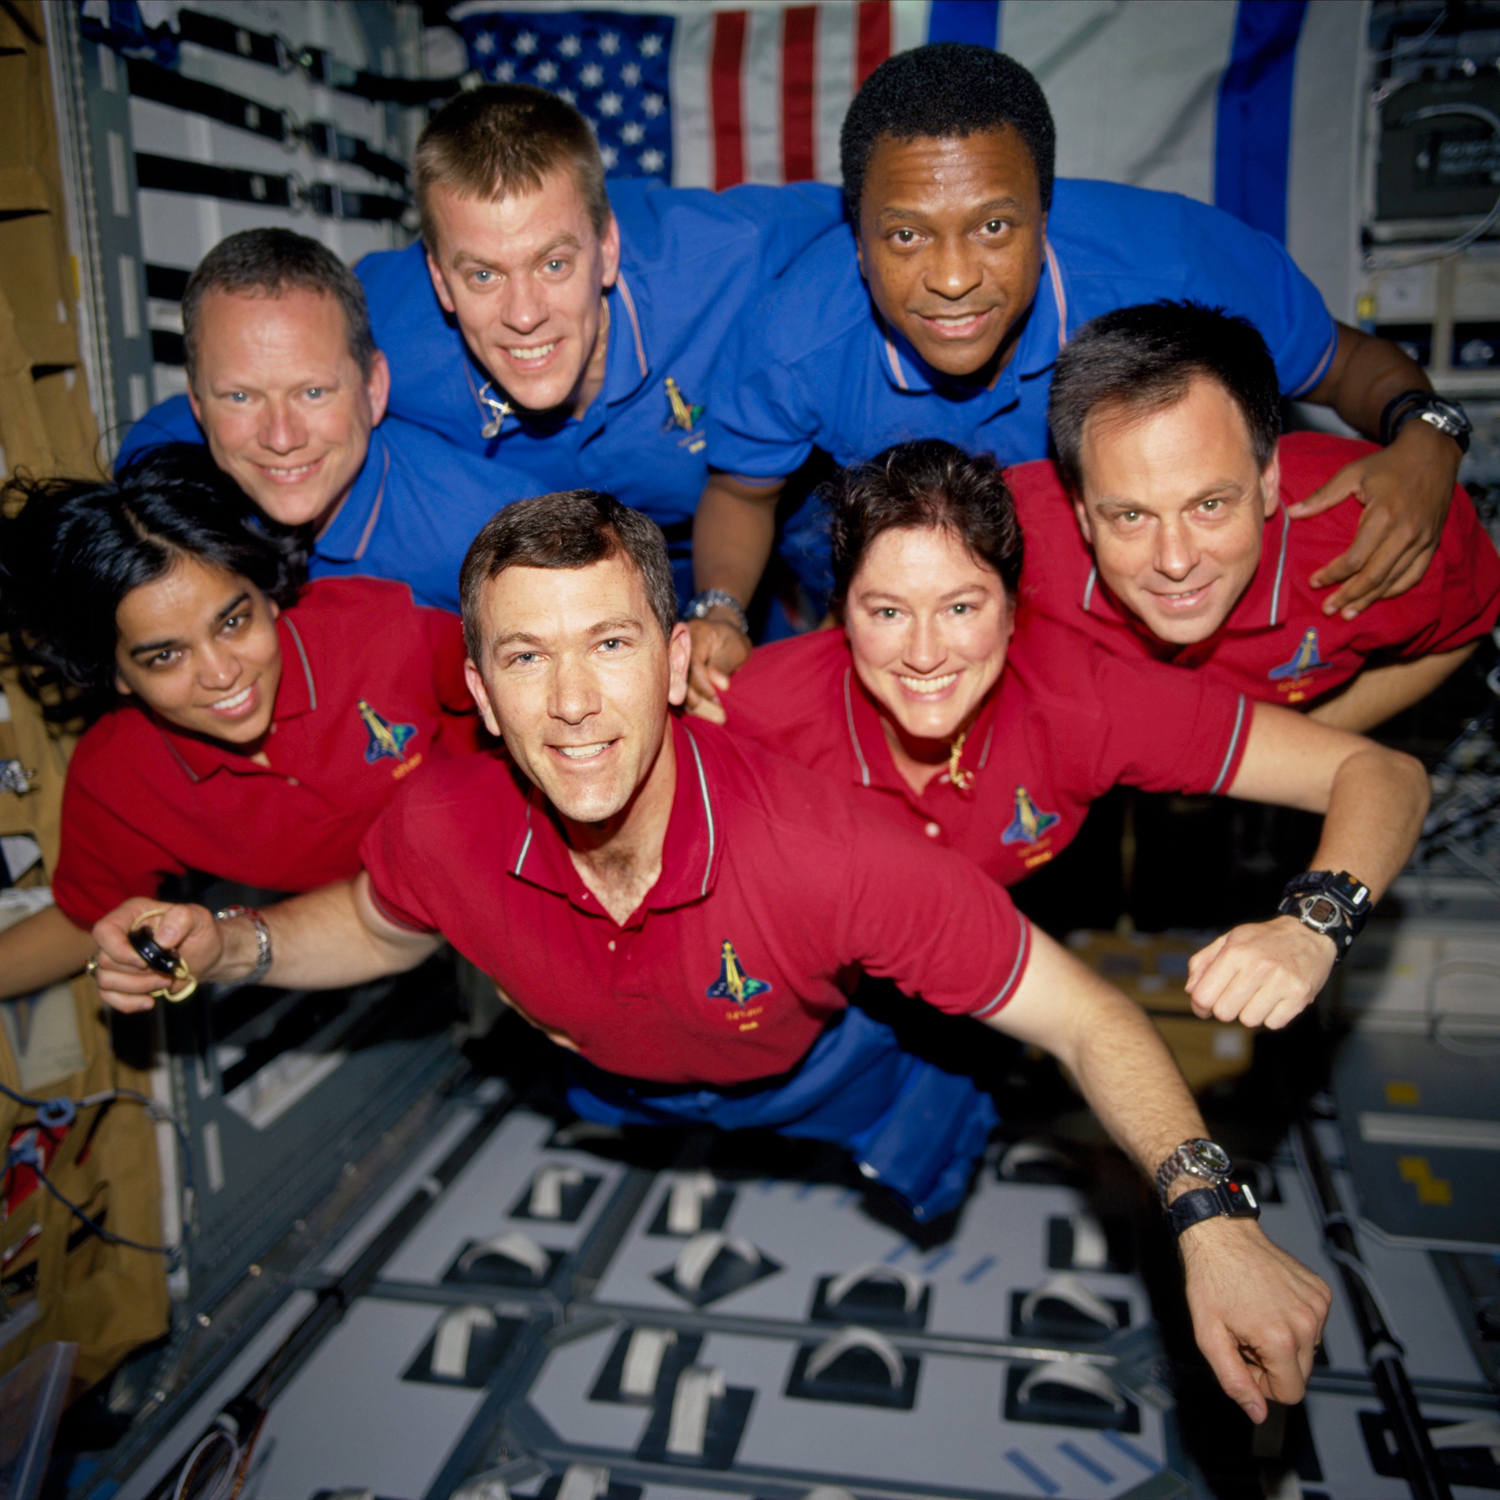 Shuttle Columbia Crew Doing Well, Studies Calcium Loss